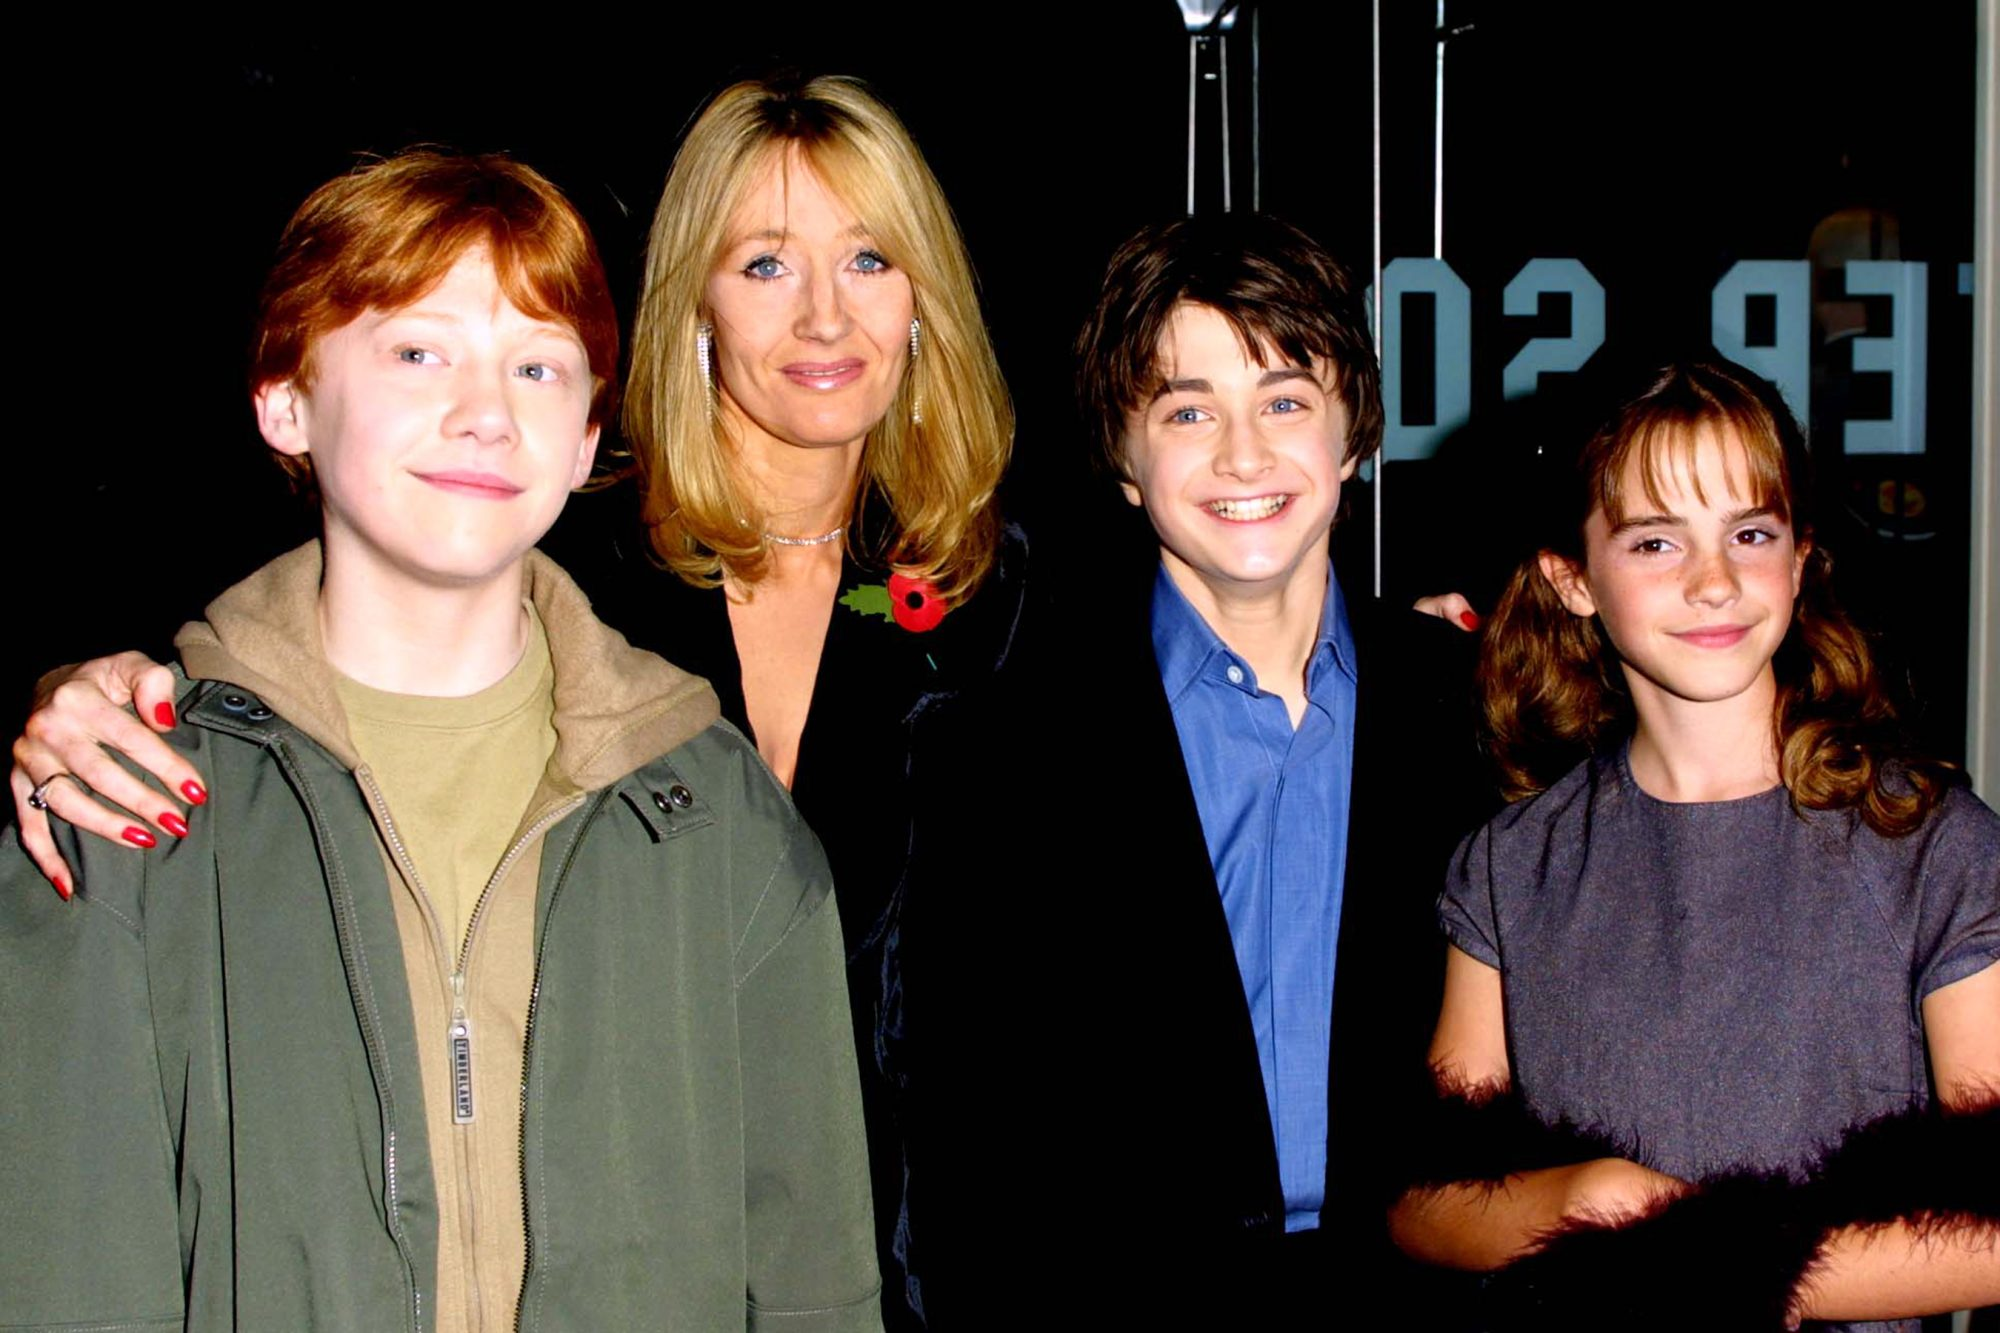 Rupert Grint, JK Rowling, Daniel Radcliffe and Emma Watson at the Harry Potter premiere in London